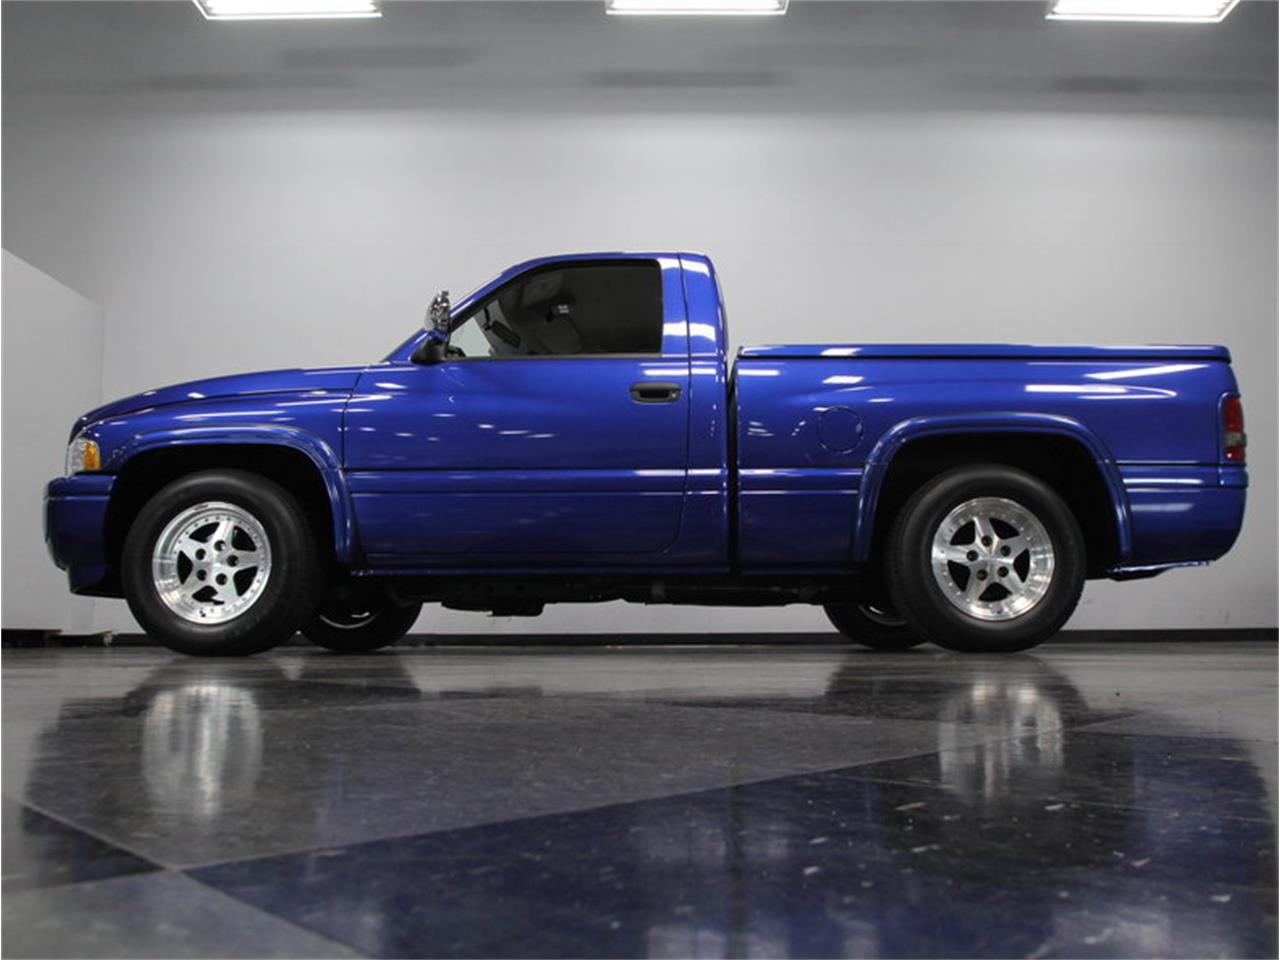 1996 Dodge Ram 1500 Indy Pace Truck For Sale Classiccars